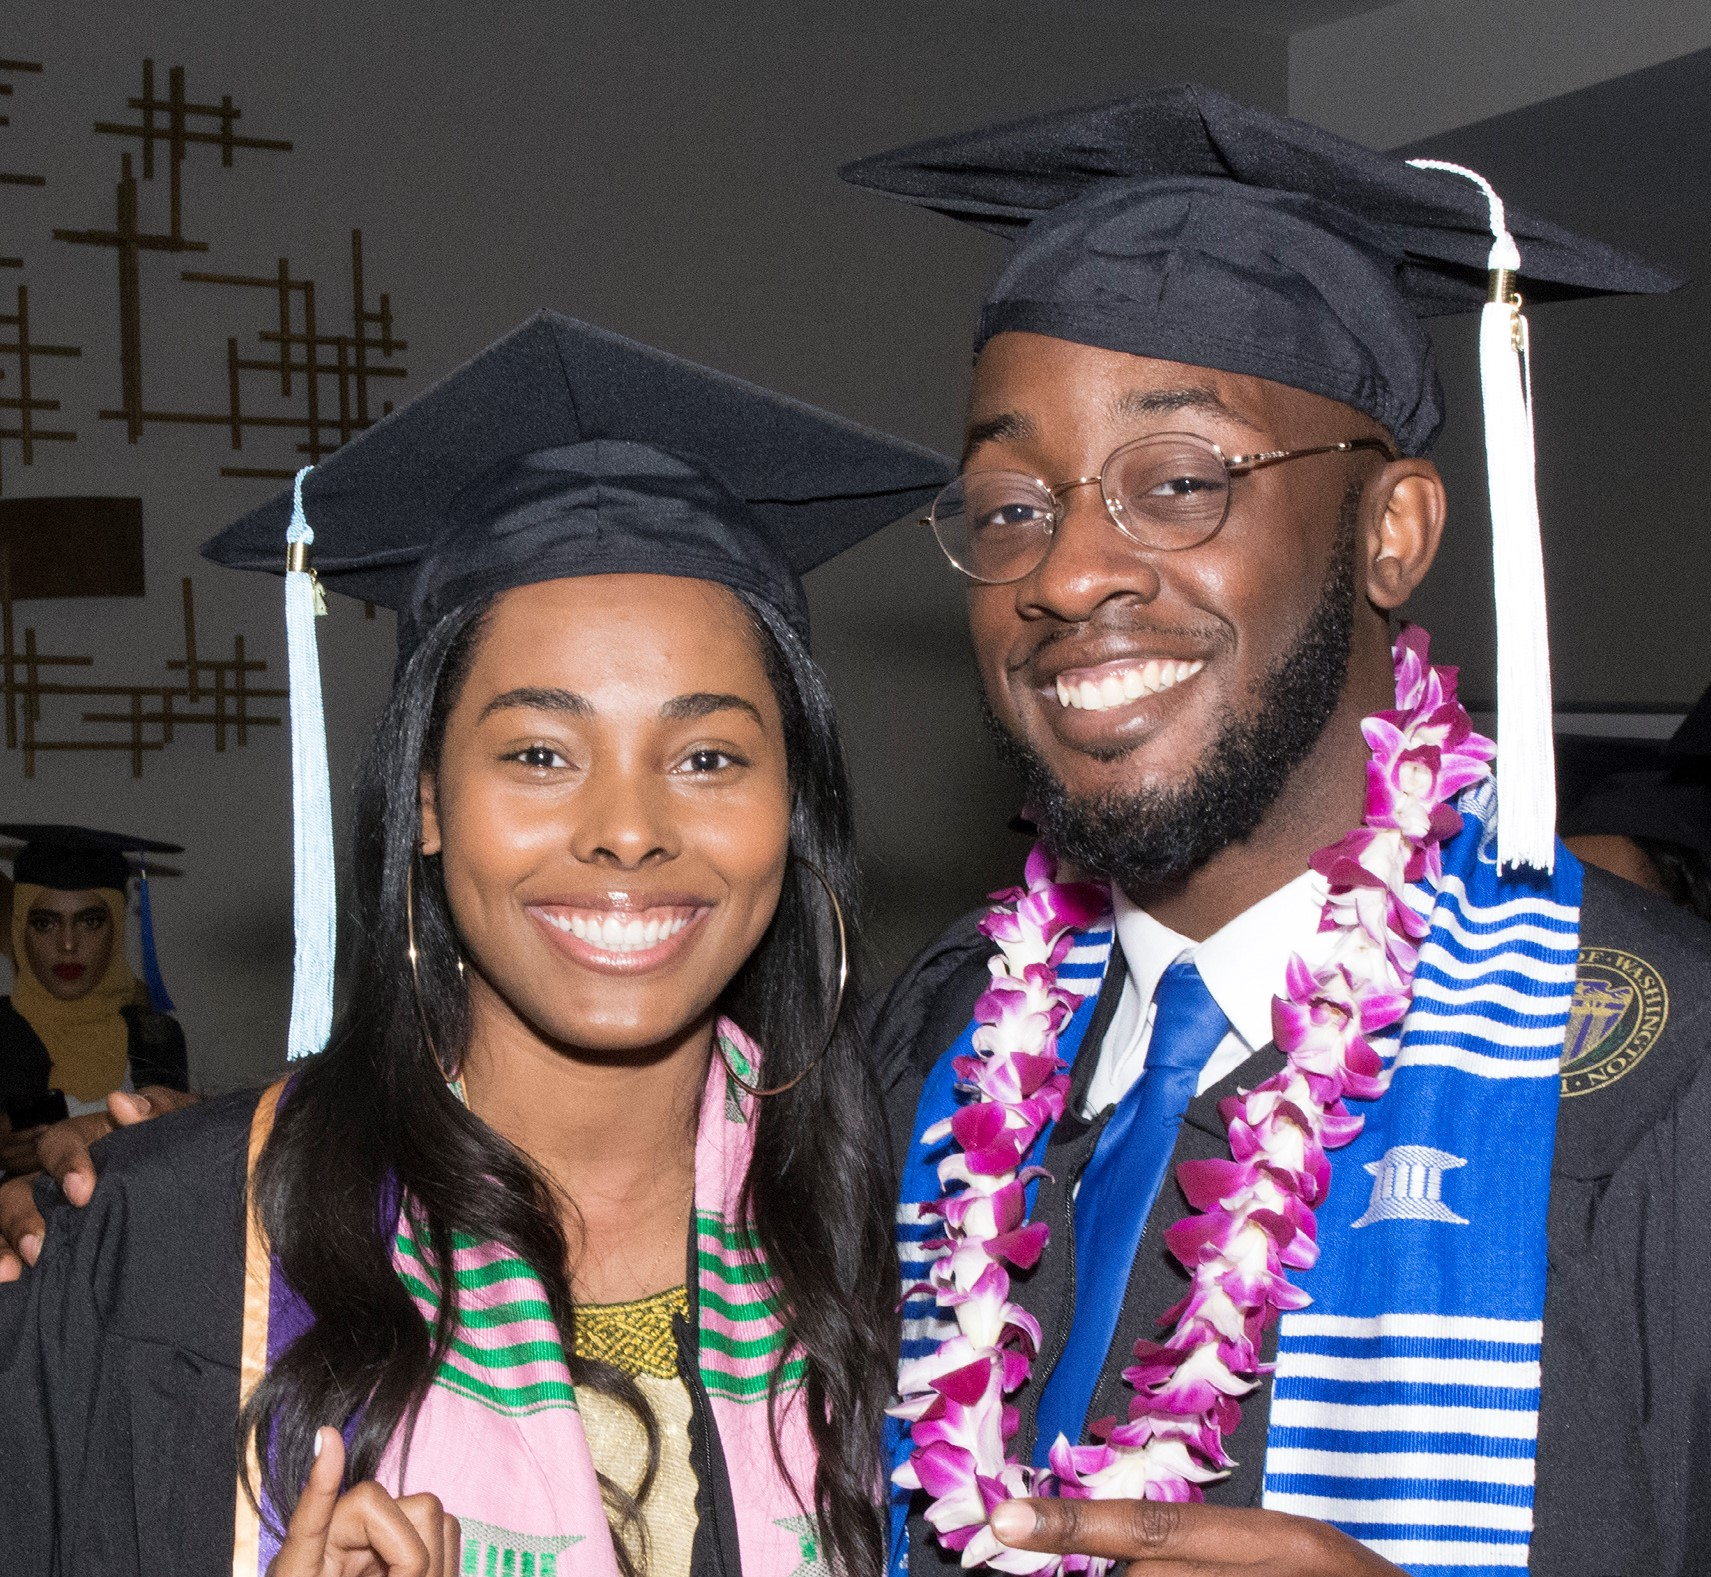 Link to article: SAVE THE DATES: Community Graduation Ceremonies to Celebrate Class of 2019